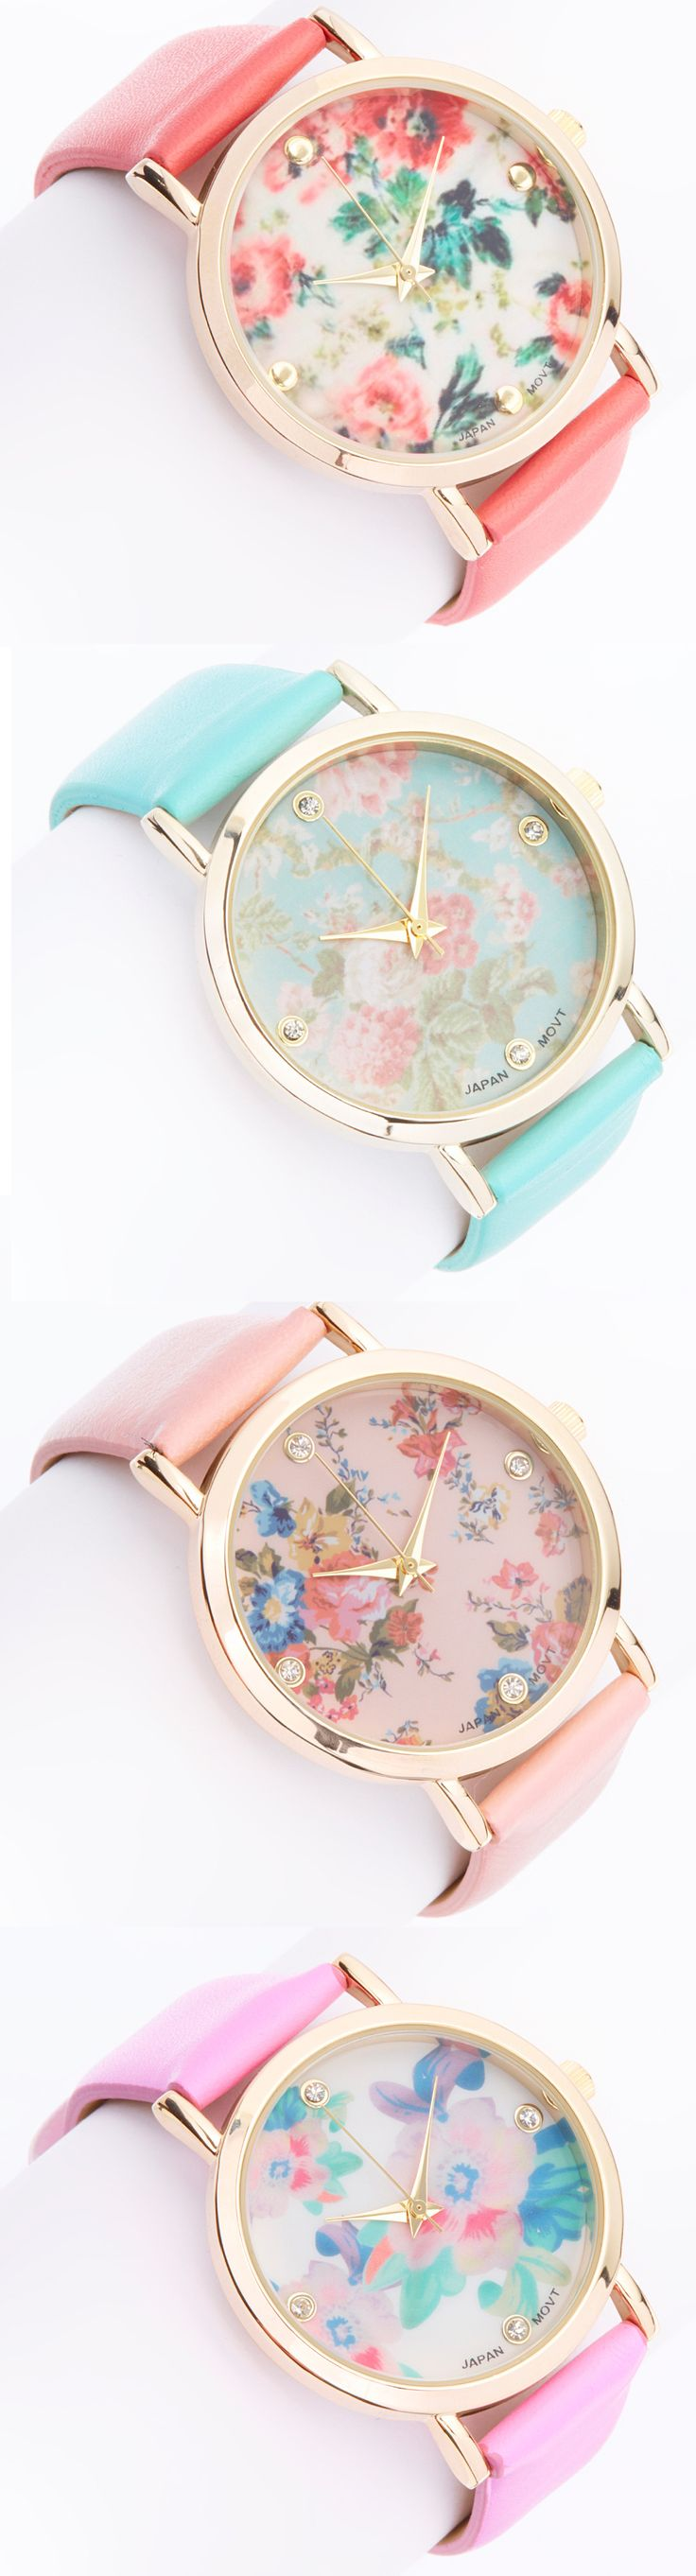 Floral watches